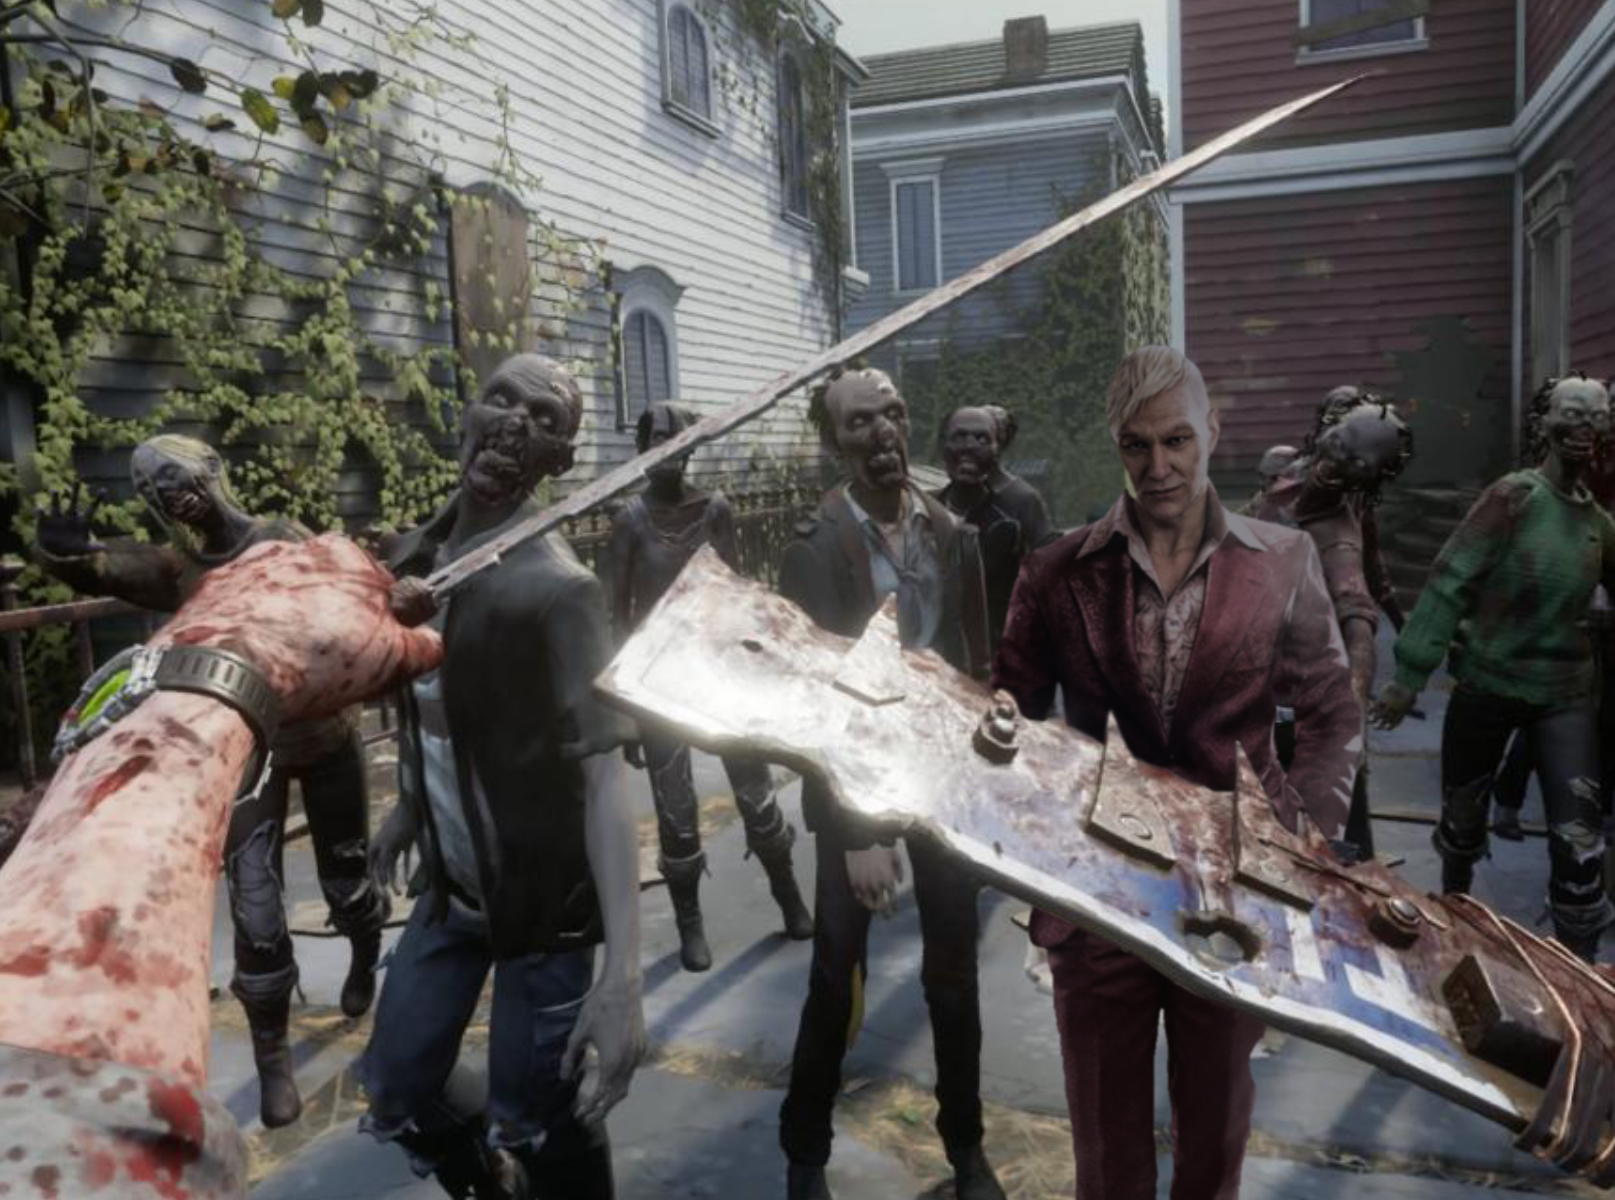 77 – The Walking Dead Saints & Sinners / FarCry 4